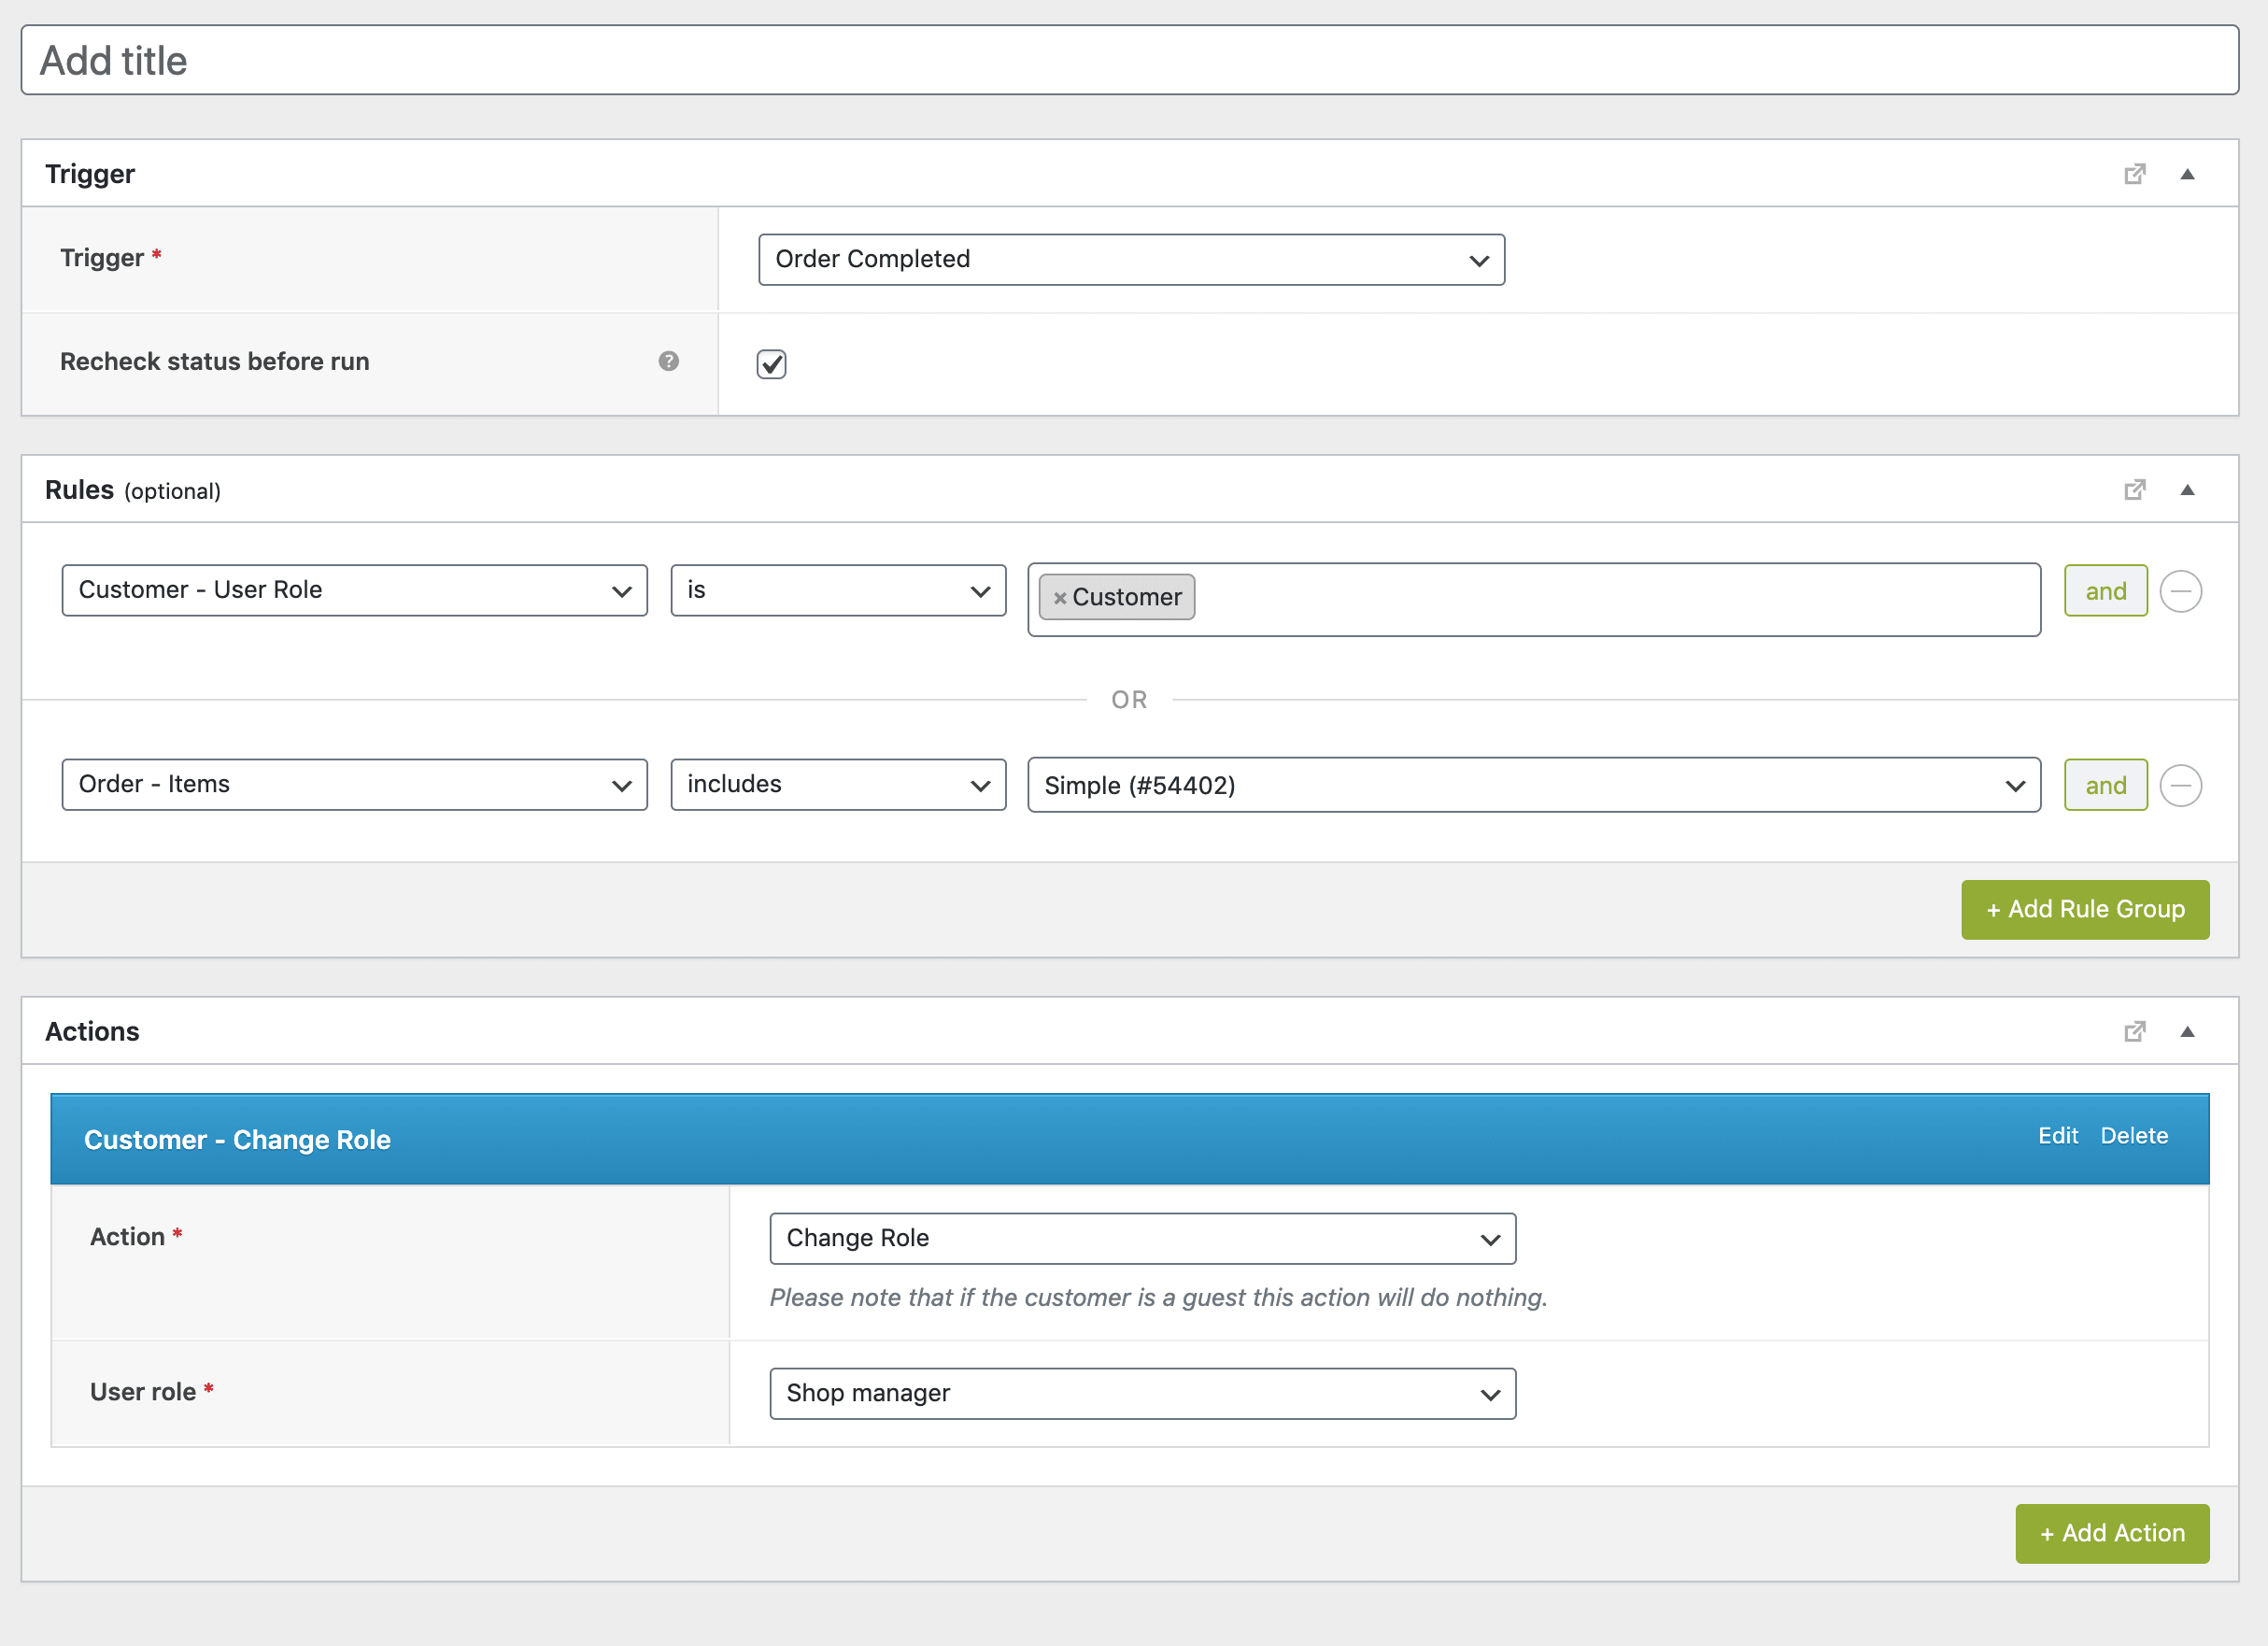 Trigger Change user role Screen Shot 2019-12-11 at 11.17.43.png